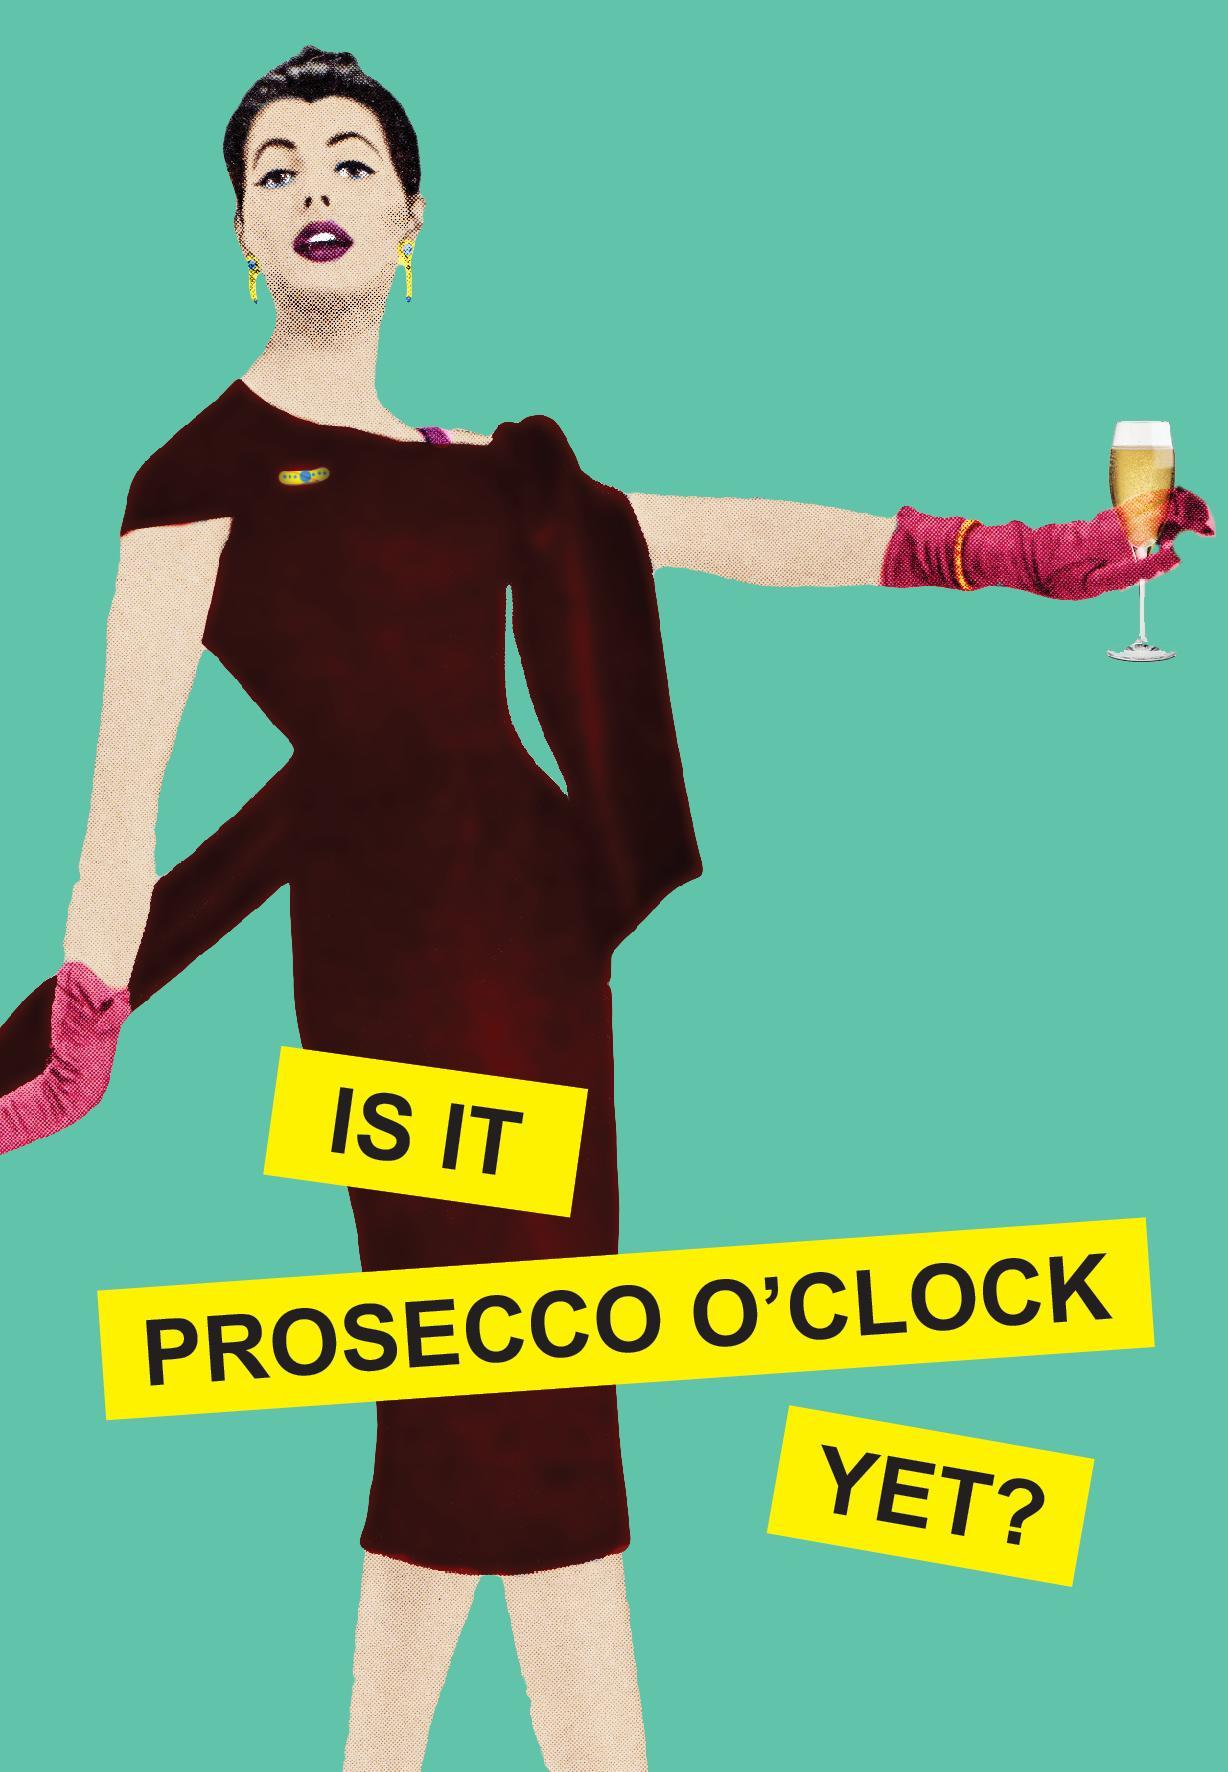 Is It Prosecco O'clock Yet? Card